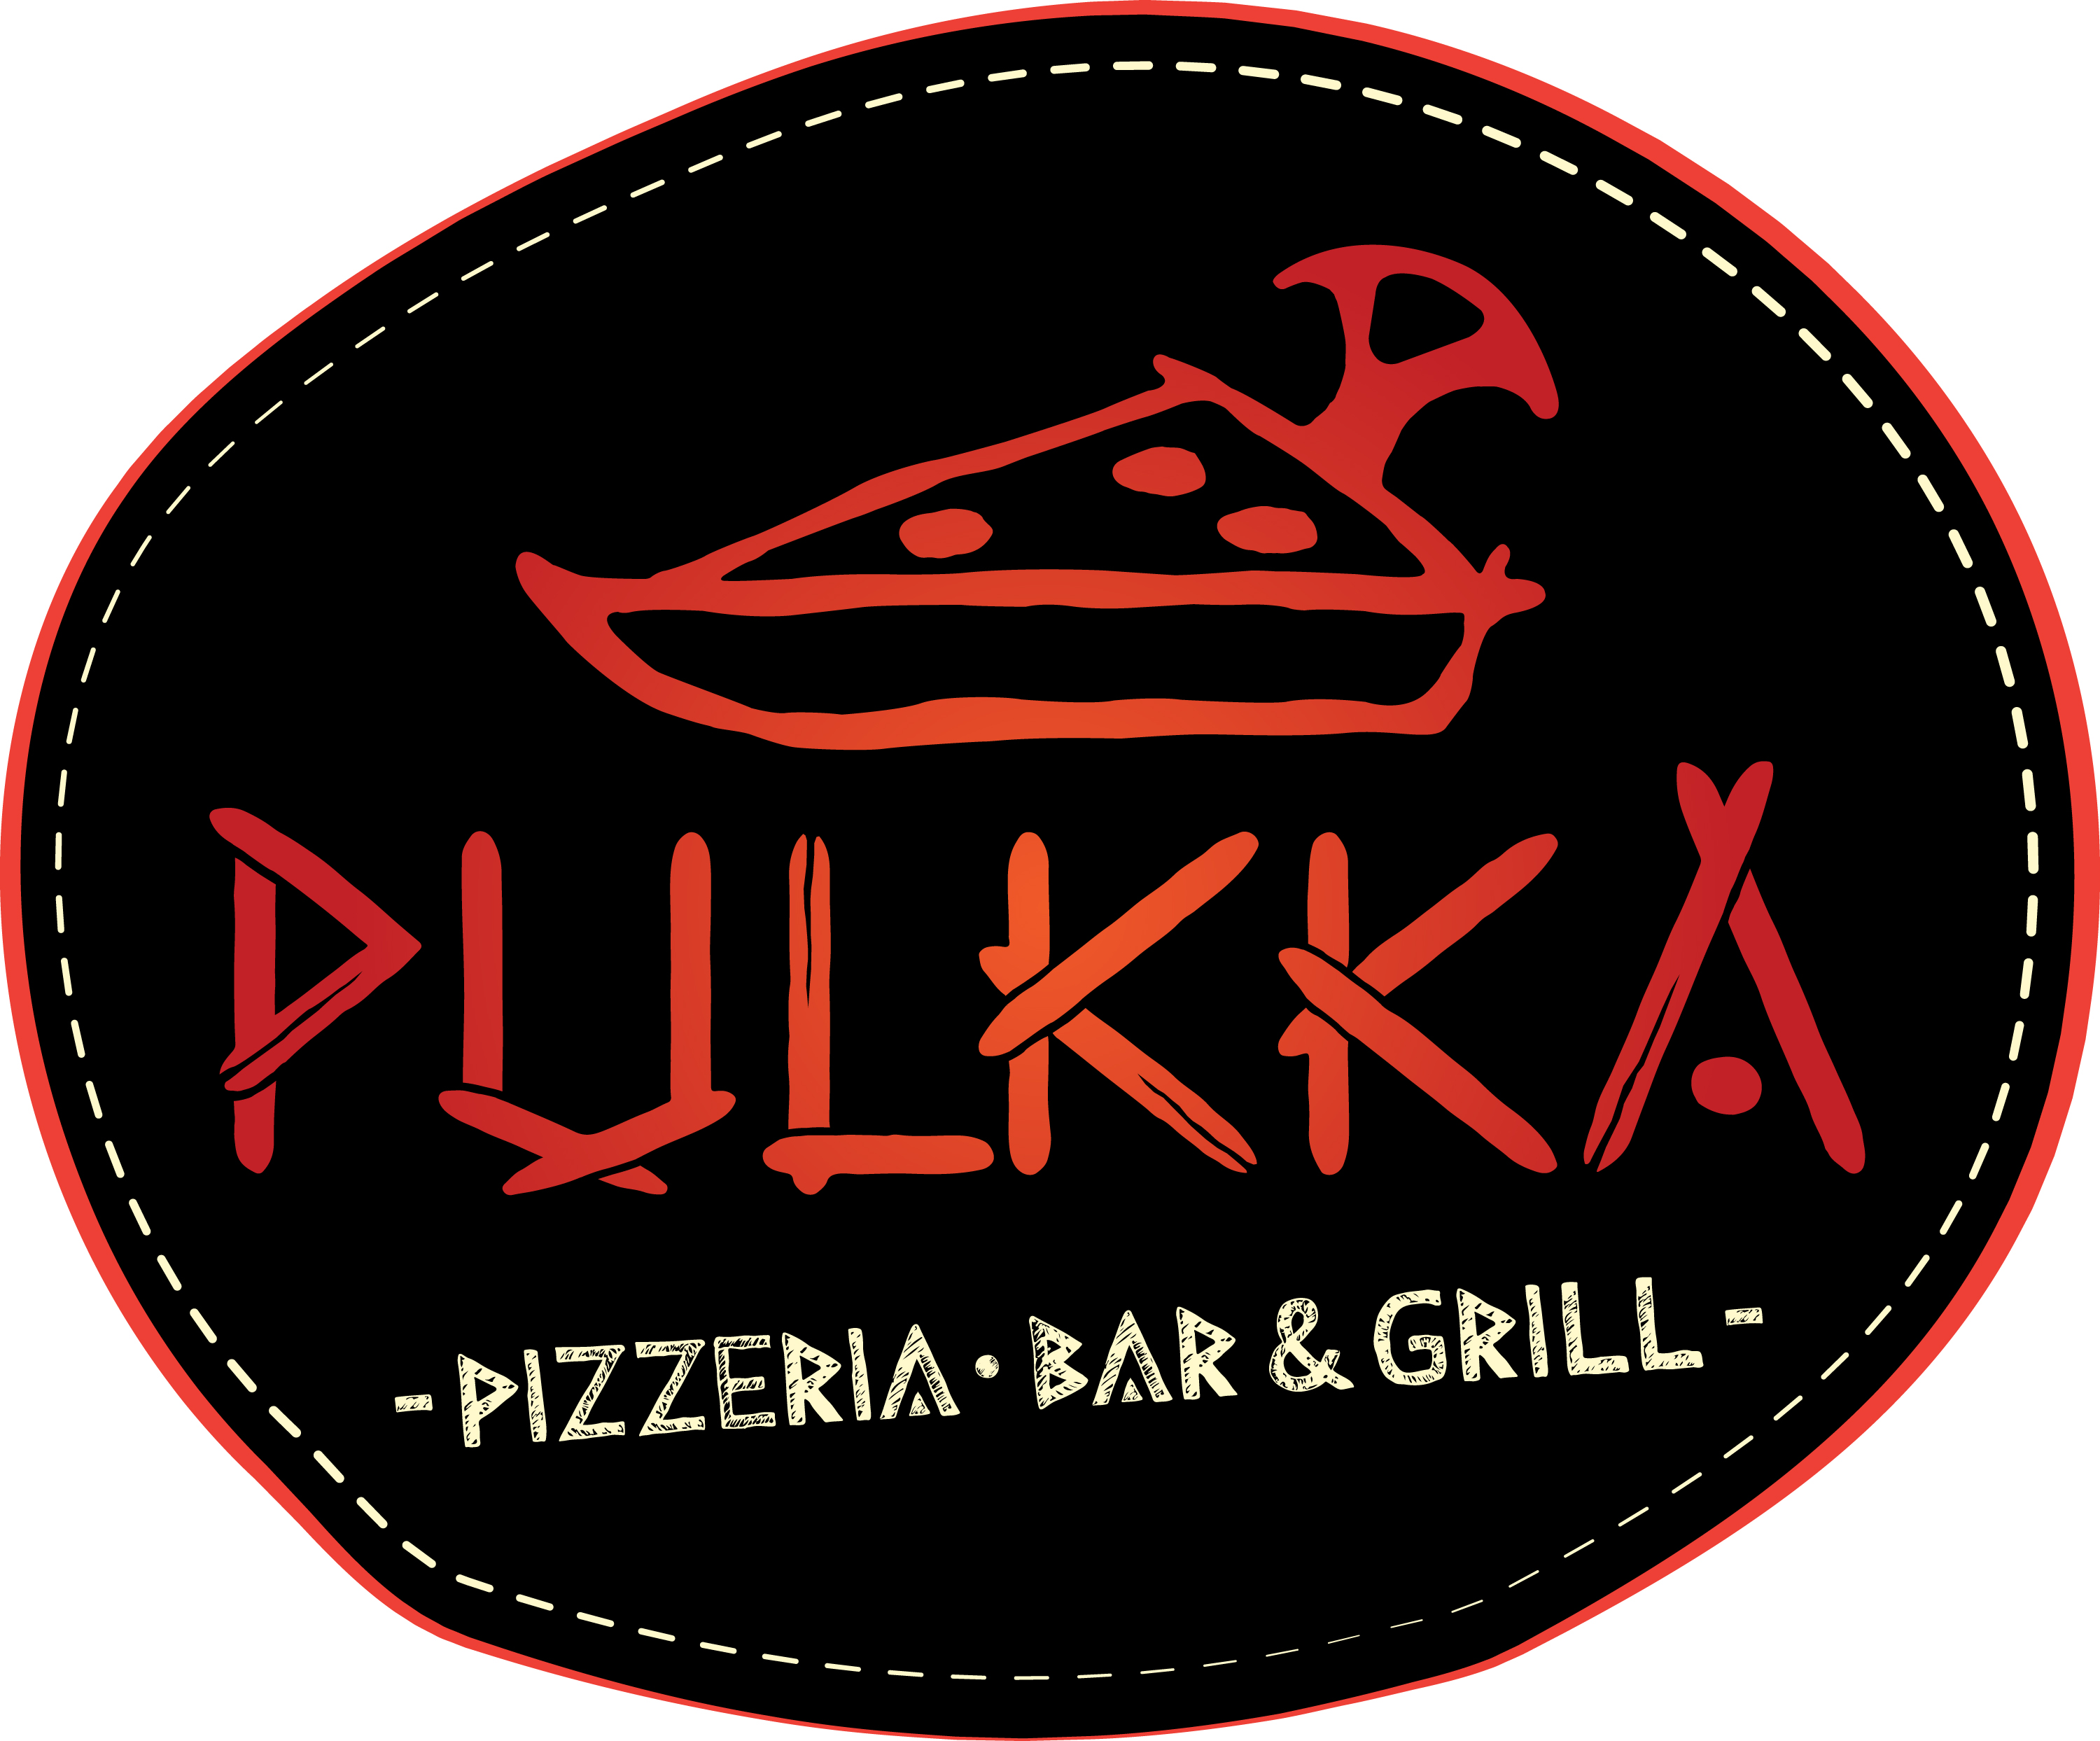 Pulkka Pizzeria Bar&Grill